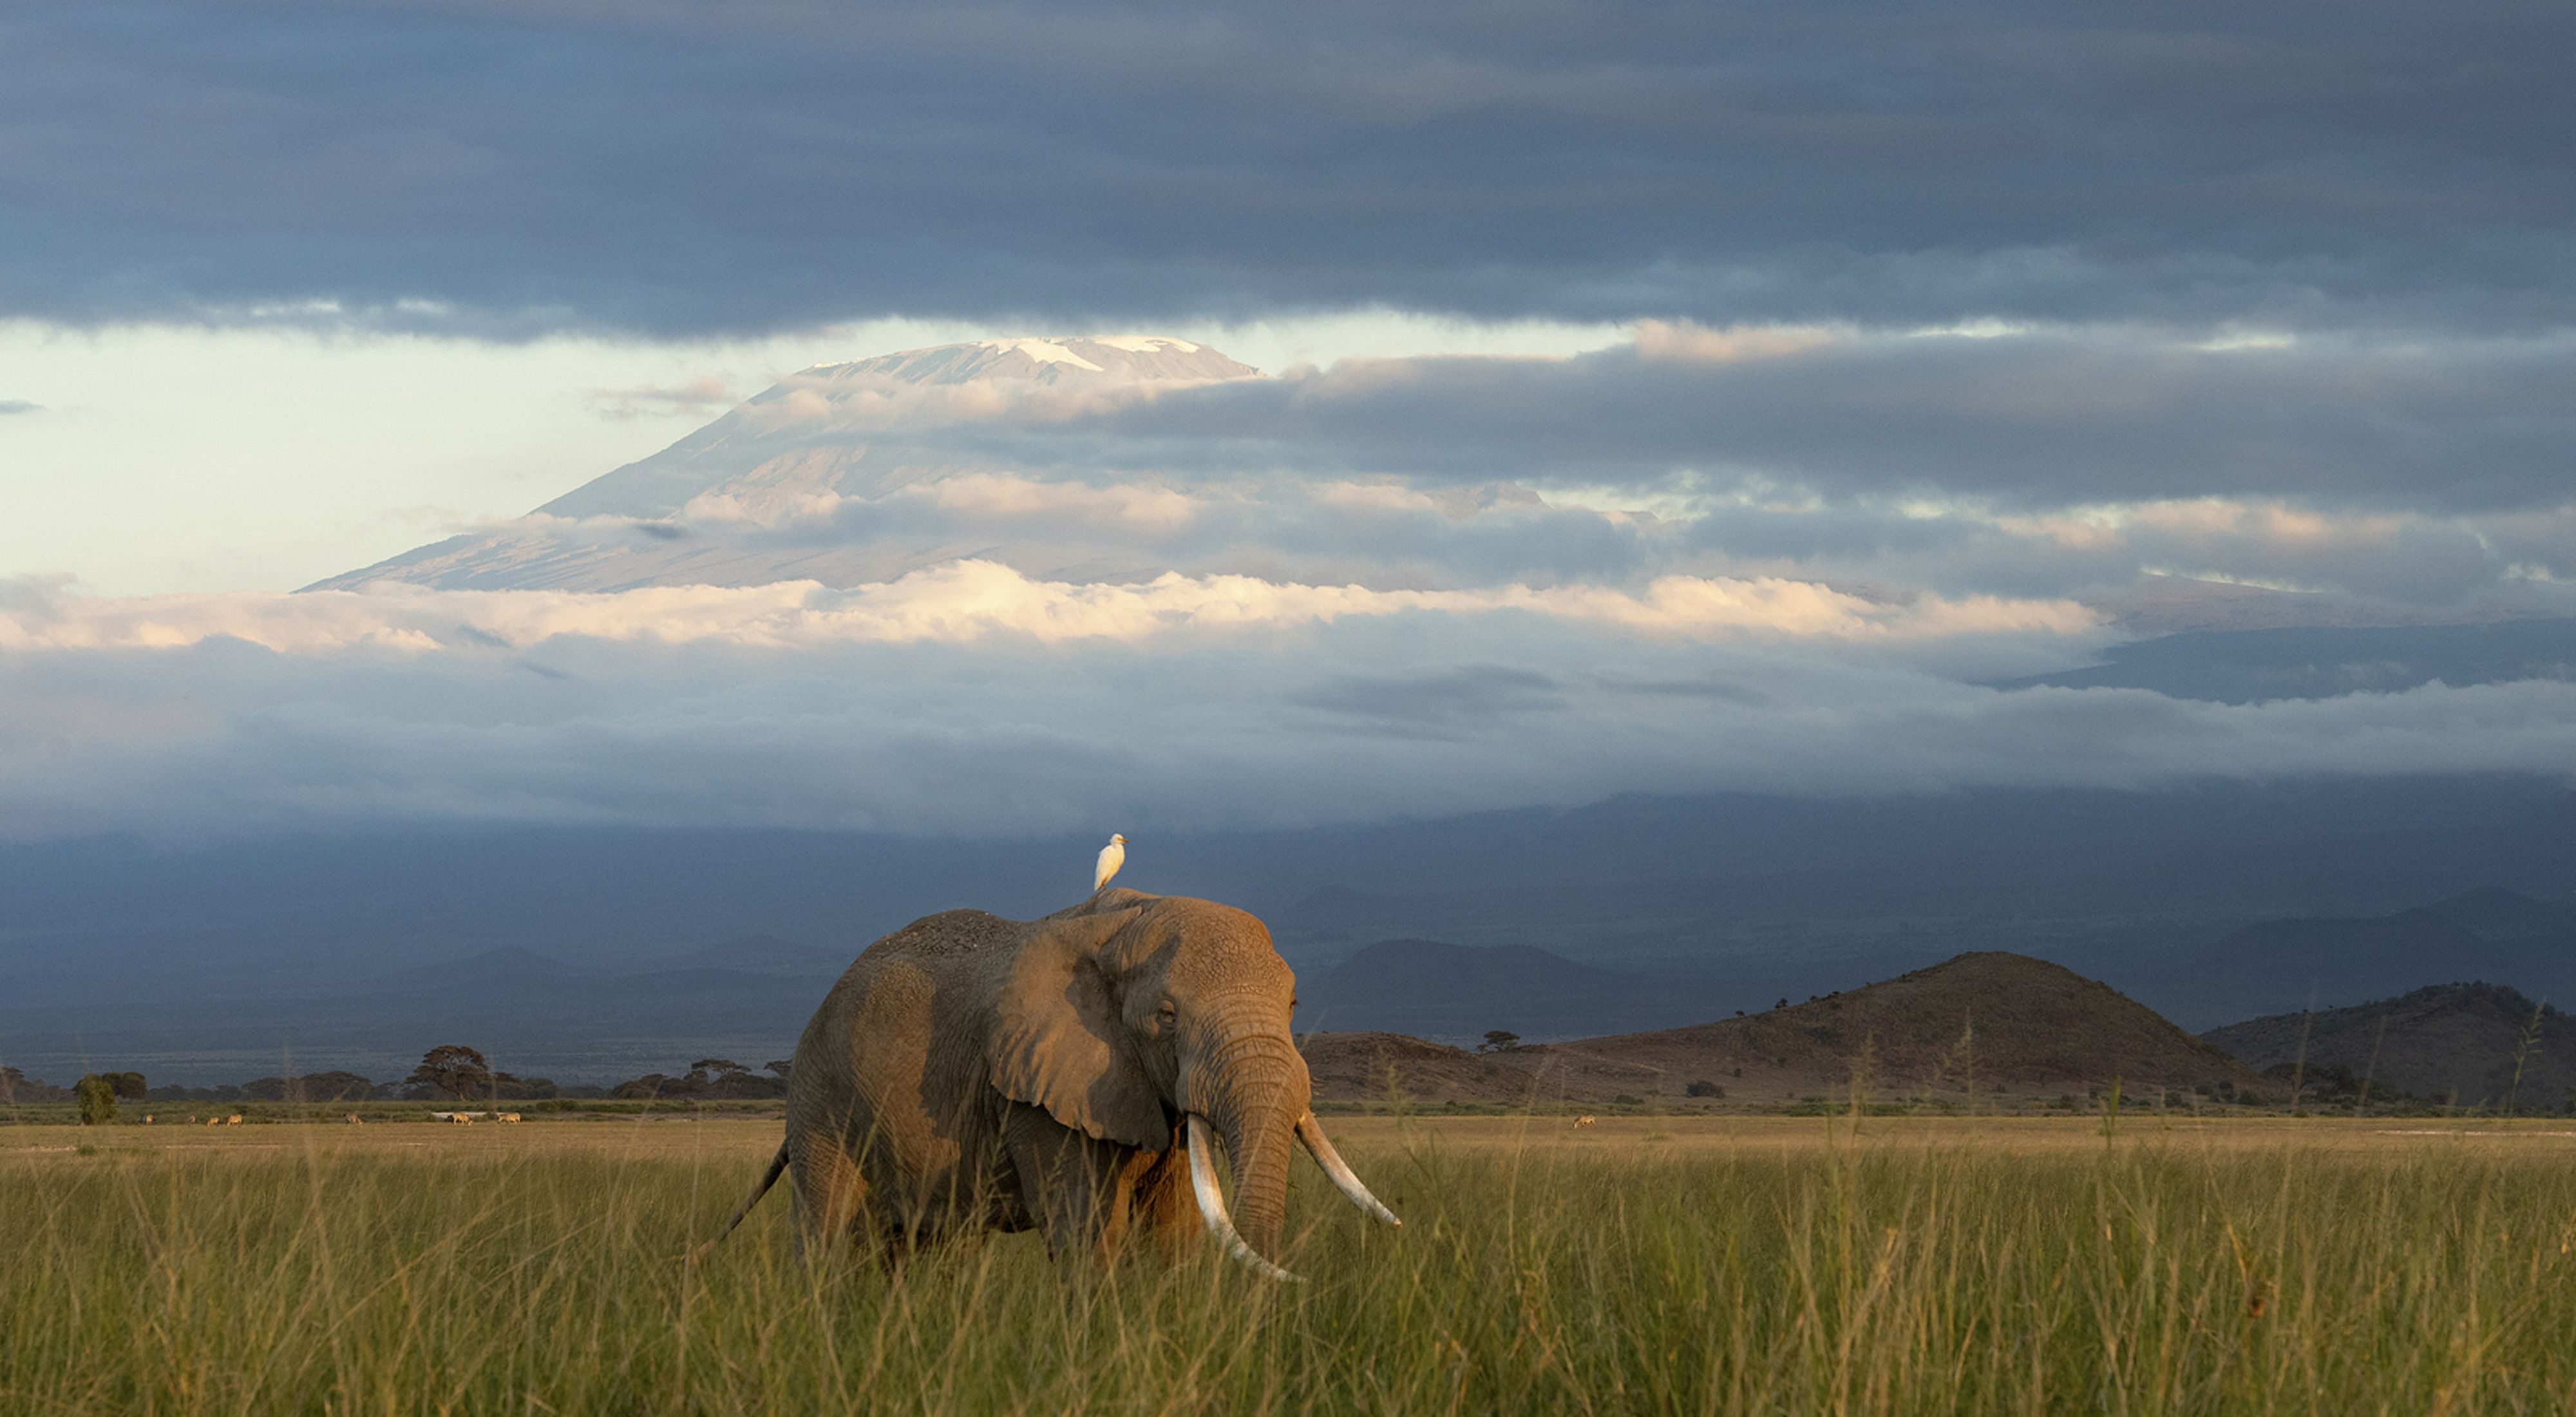 A beautiful morning watching elephants in Amboseli with Mt. Kilimanjaro in the background.